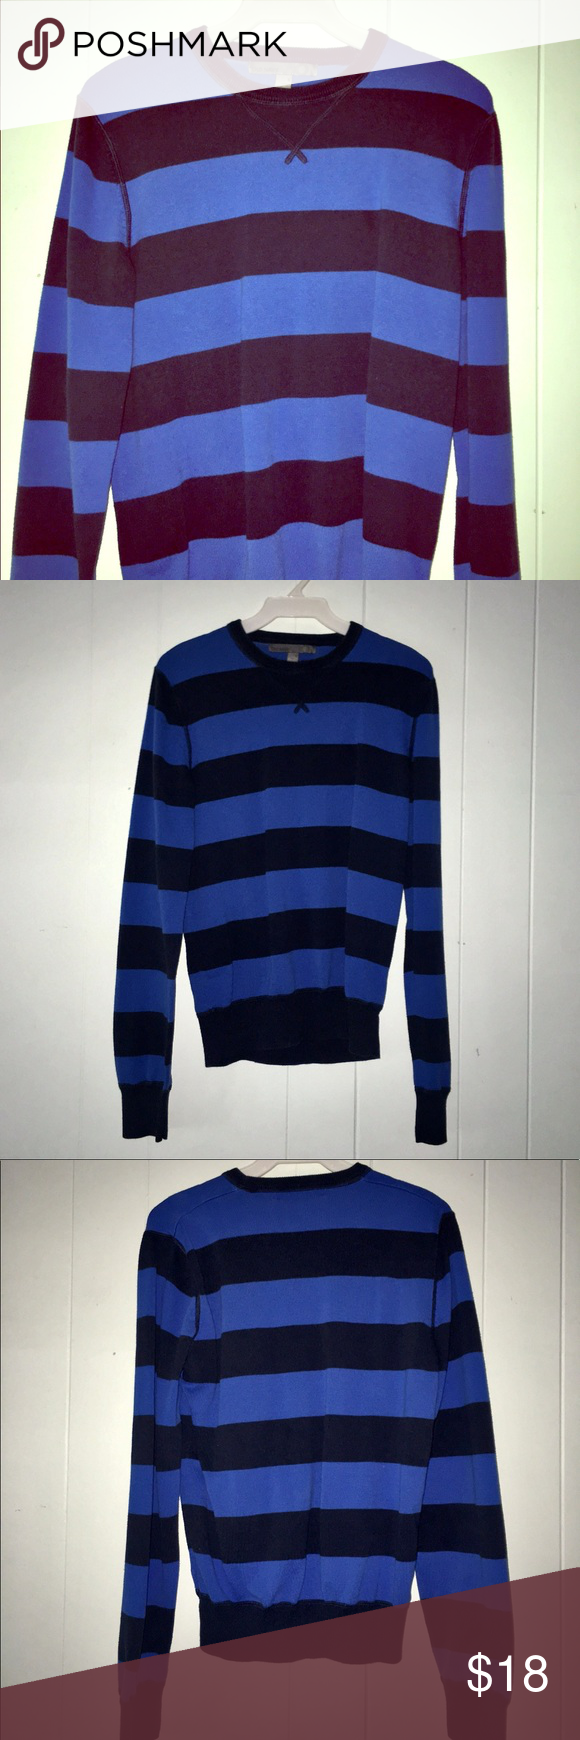 Old Navy Blue & Black Striped Sweater | Striped sweaters, Stains ...